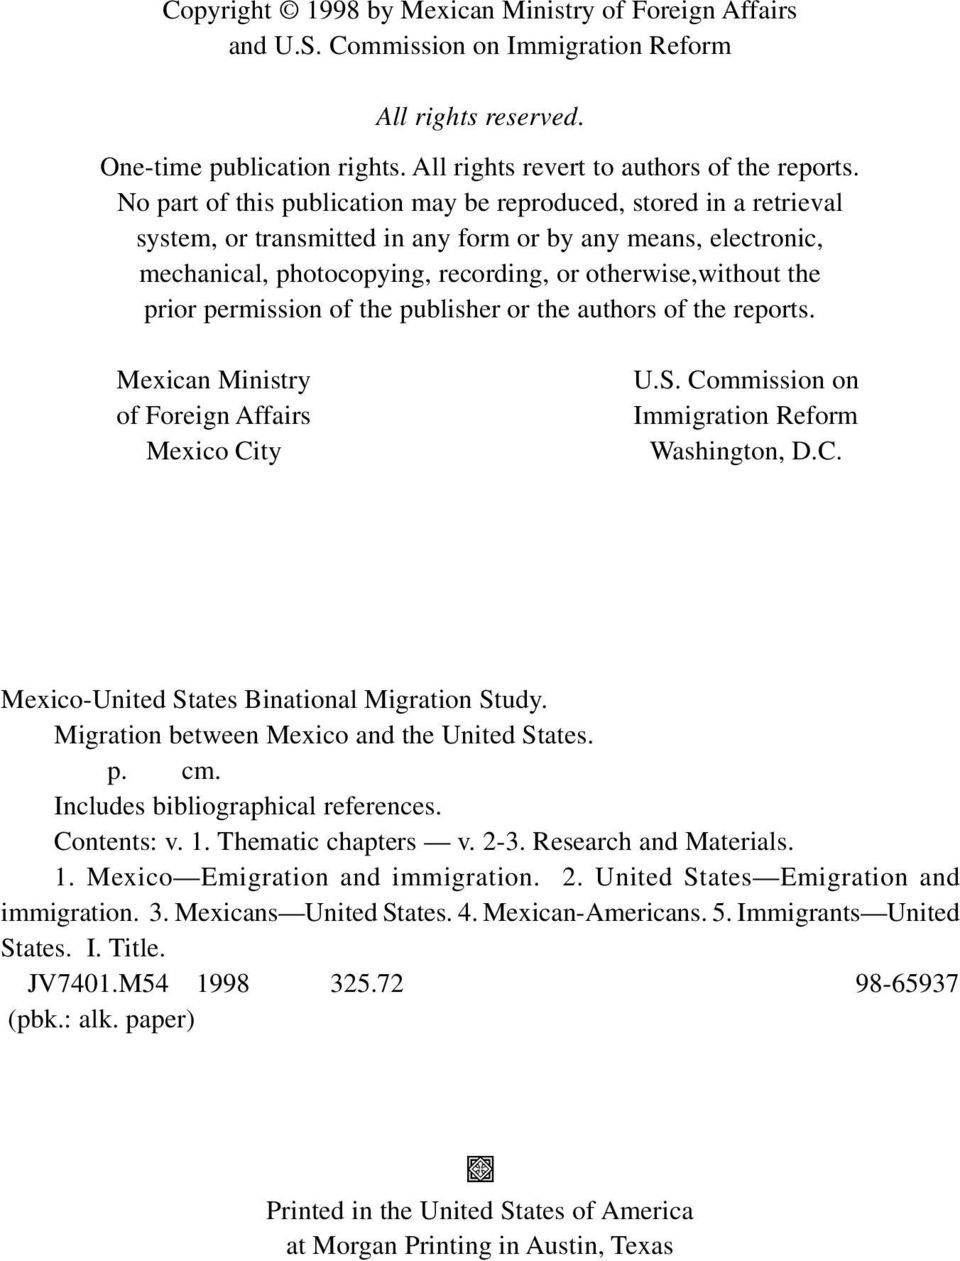 prior permission of the publisher or the authors of the reports. Mexican Ministry of Foreign Affairs Mexico City U.S. Commission on Immigration Reform Washington, D.C. Mexico-United States Binational Migration Study.